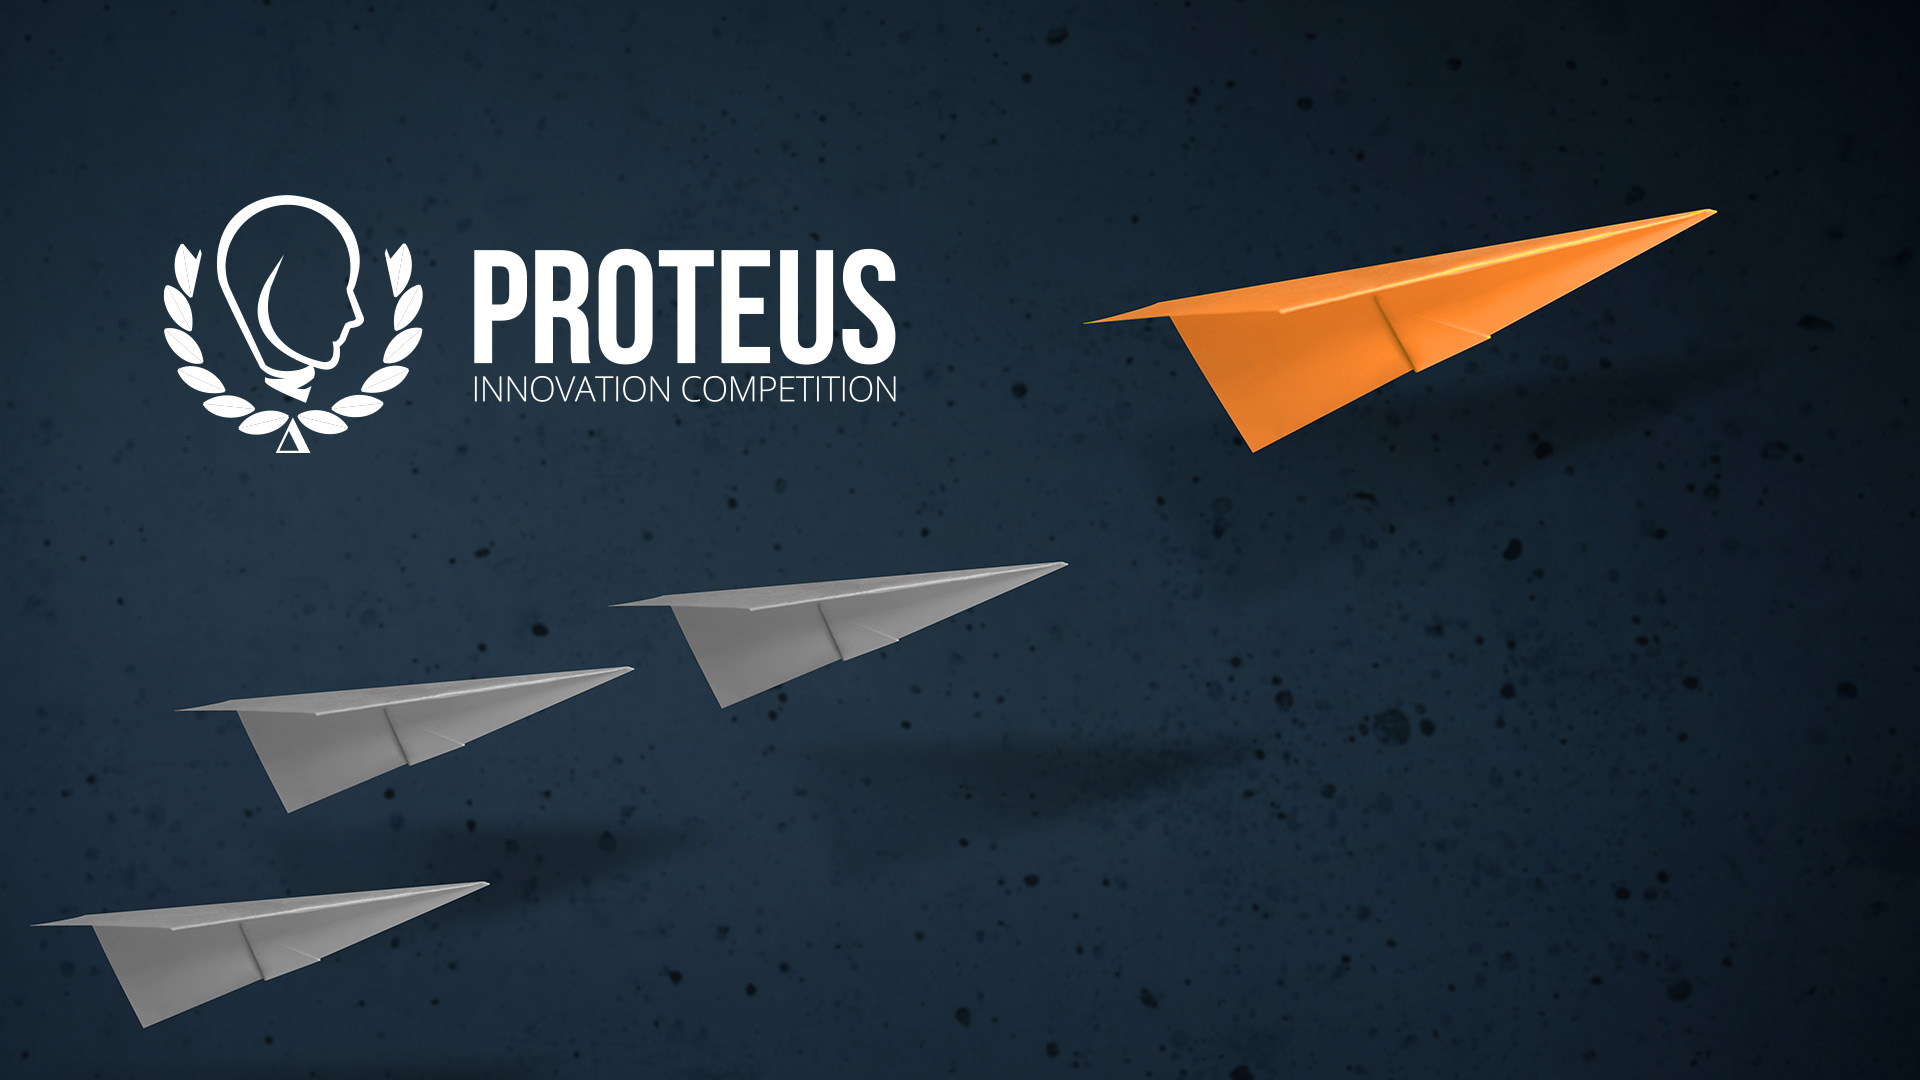 Proteus Banner with paper air planes